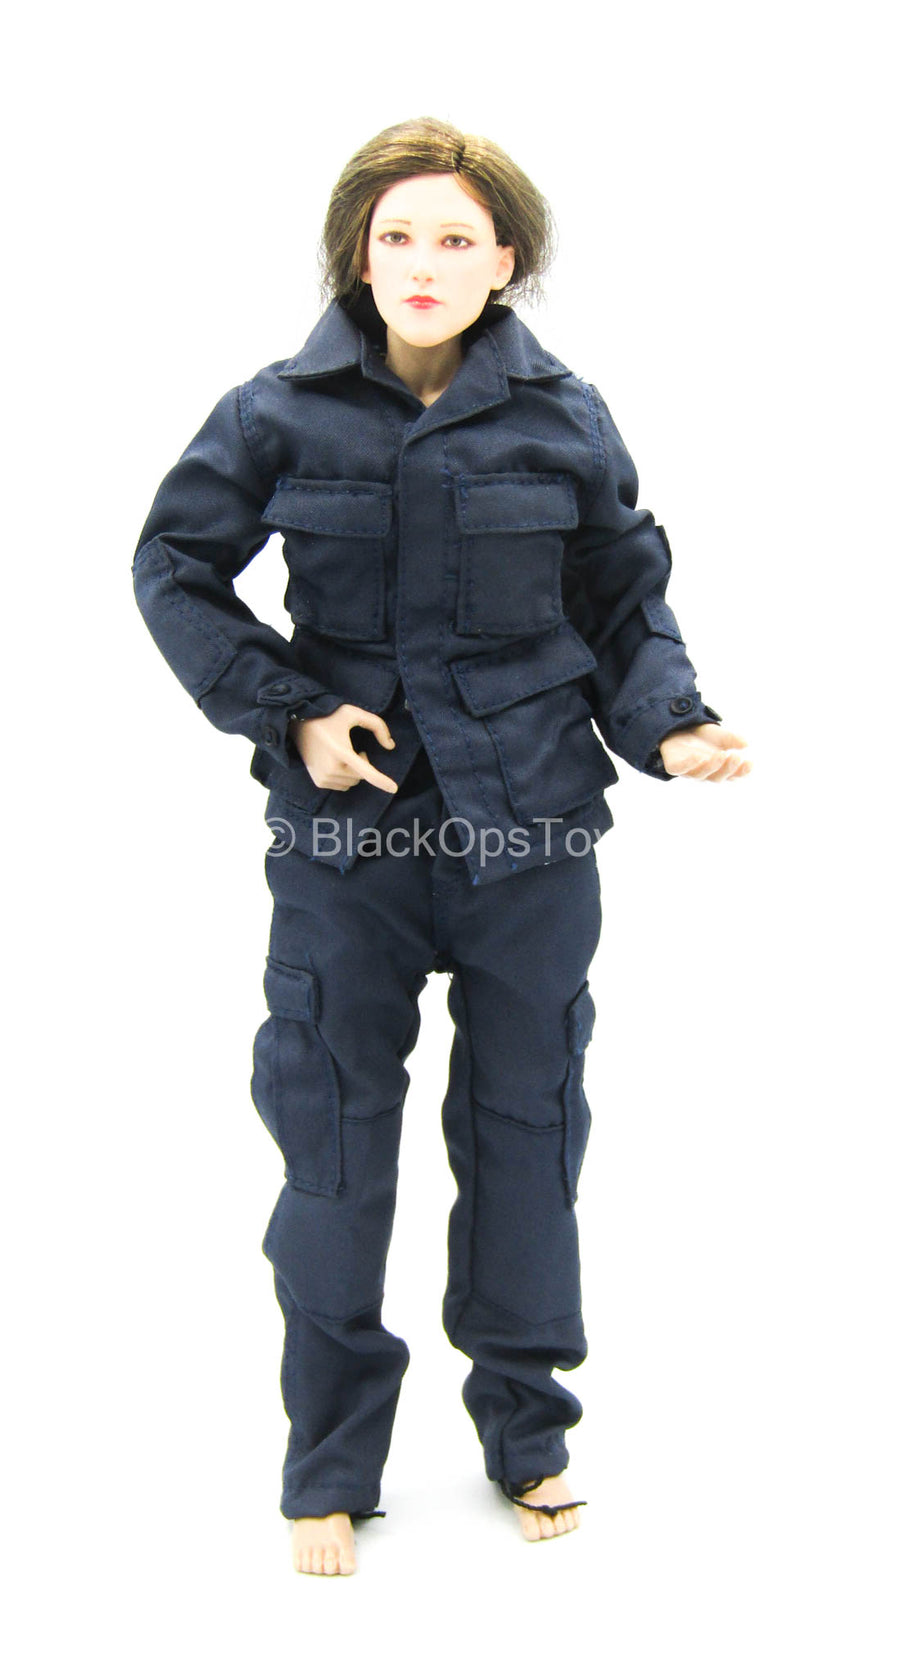 Female S.W.A.T. - Blue S.W.A.T. Uniform